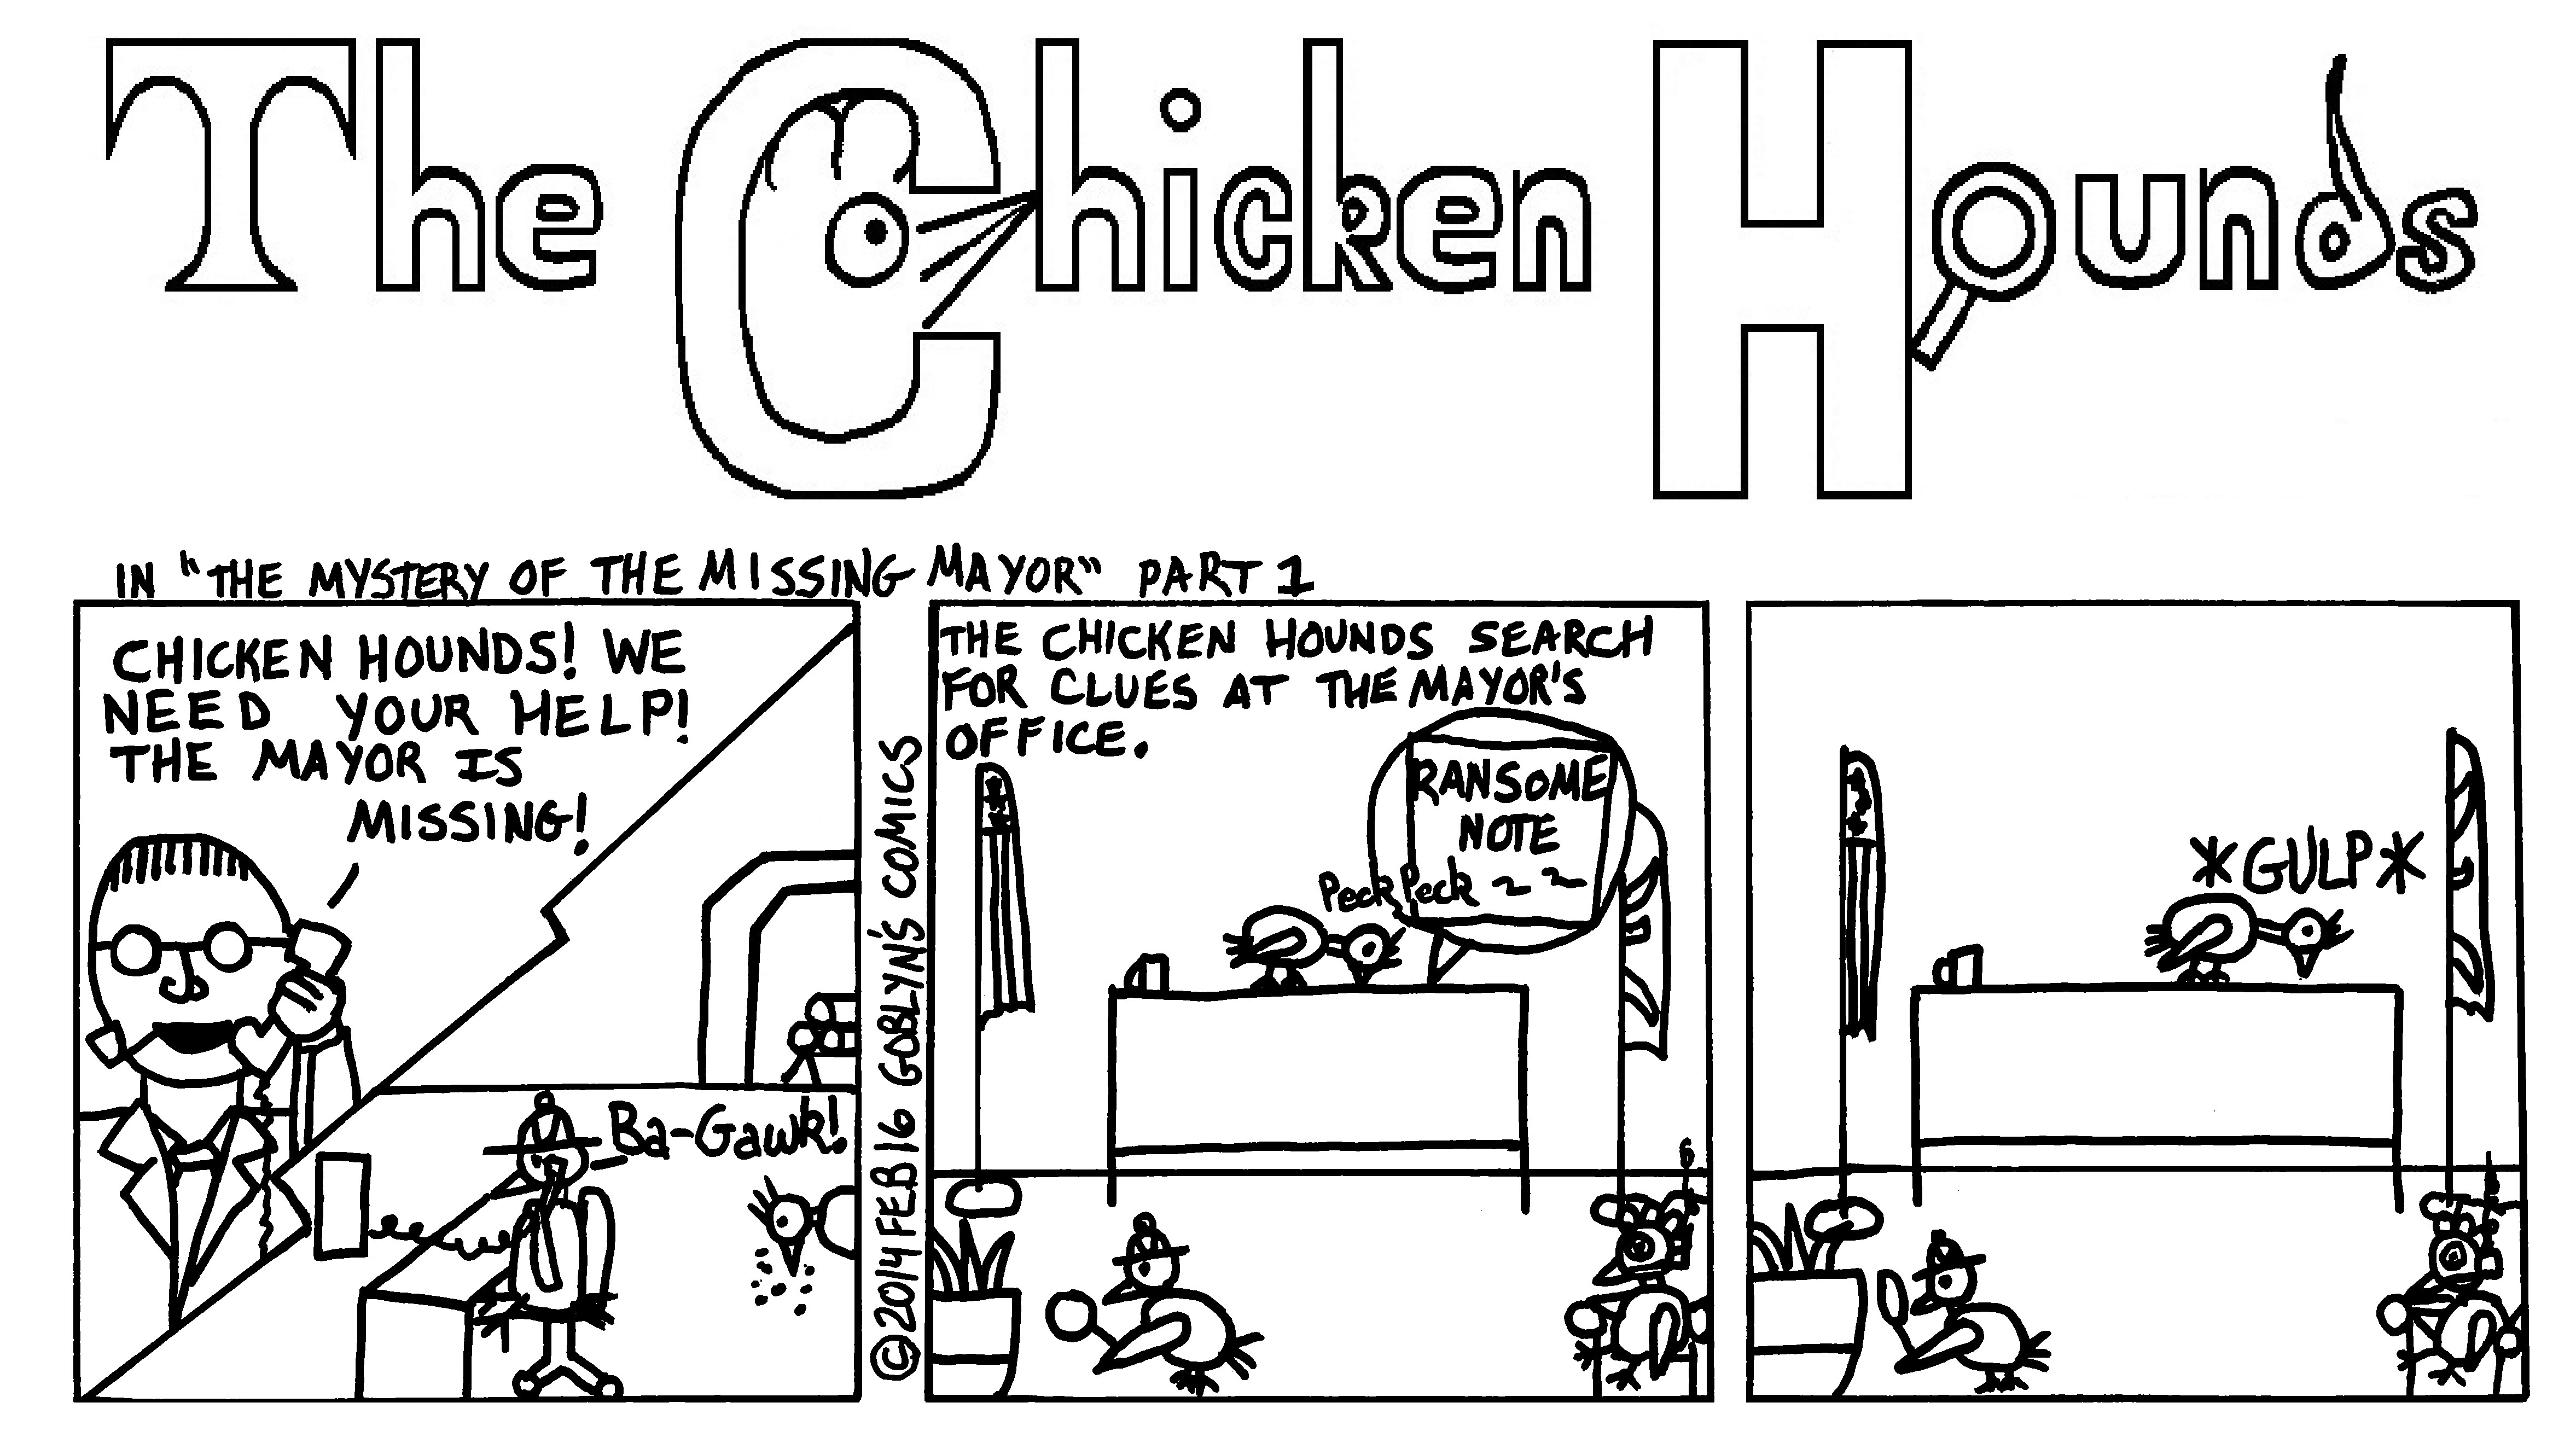 "The Chicken Hounds, San Francisco's Greatest Detectives, in ""The Mystery of the Missing Mayor"" Part 1."